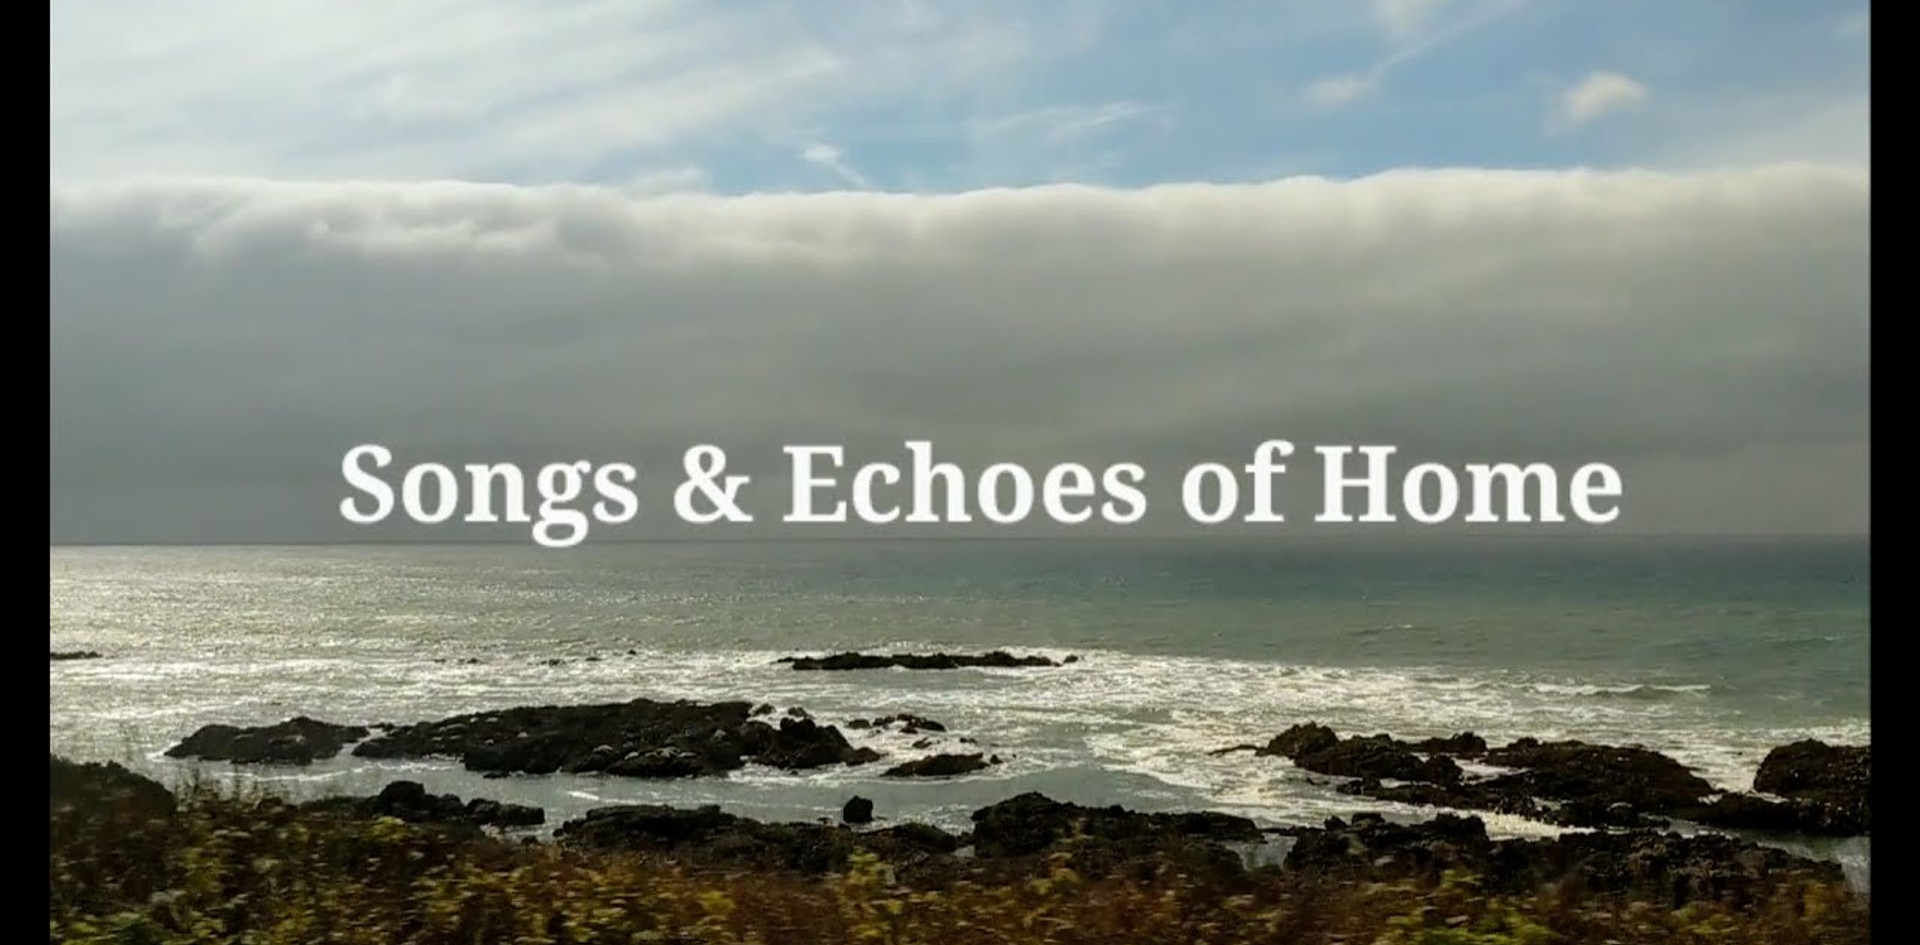 Songs & Echoes of Home: A Mini Concert